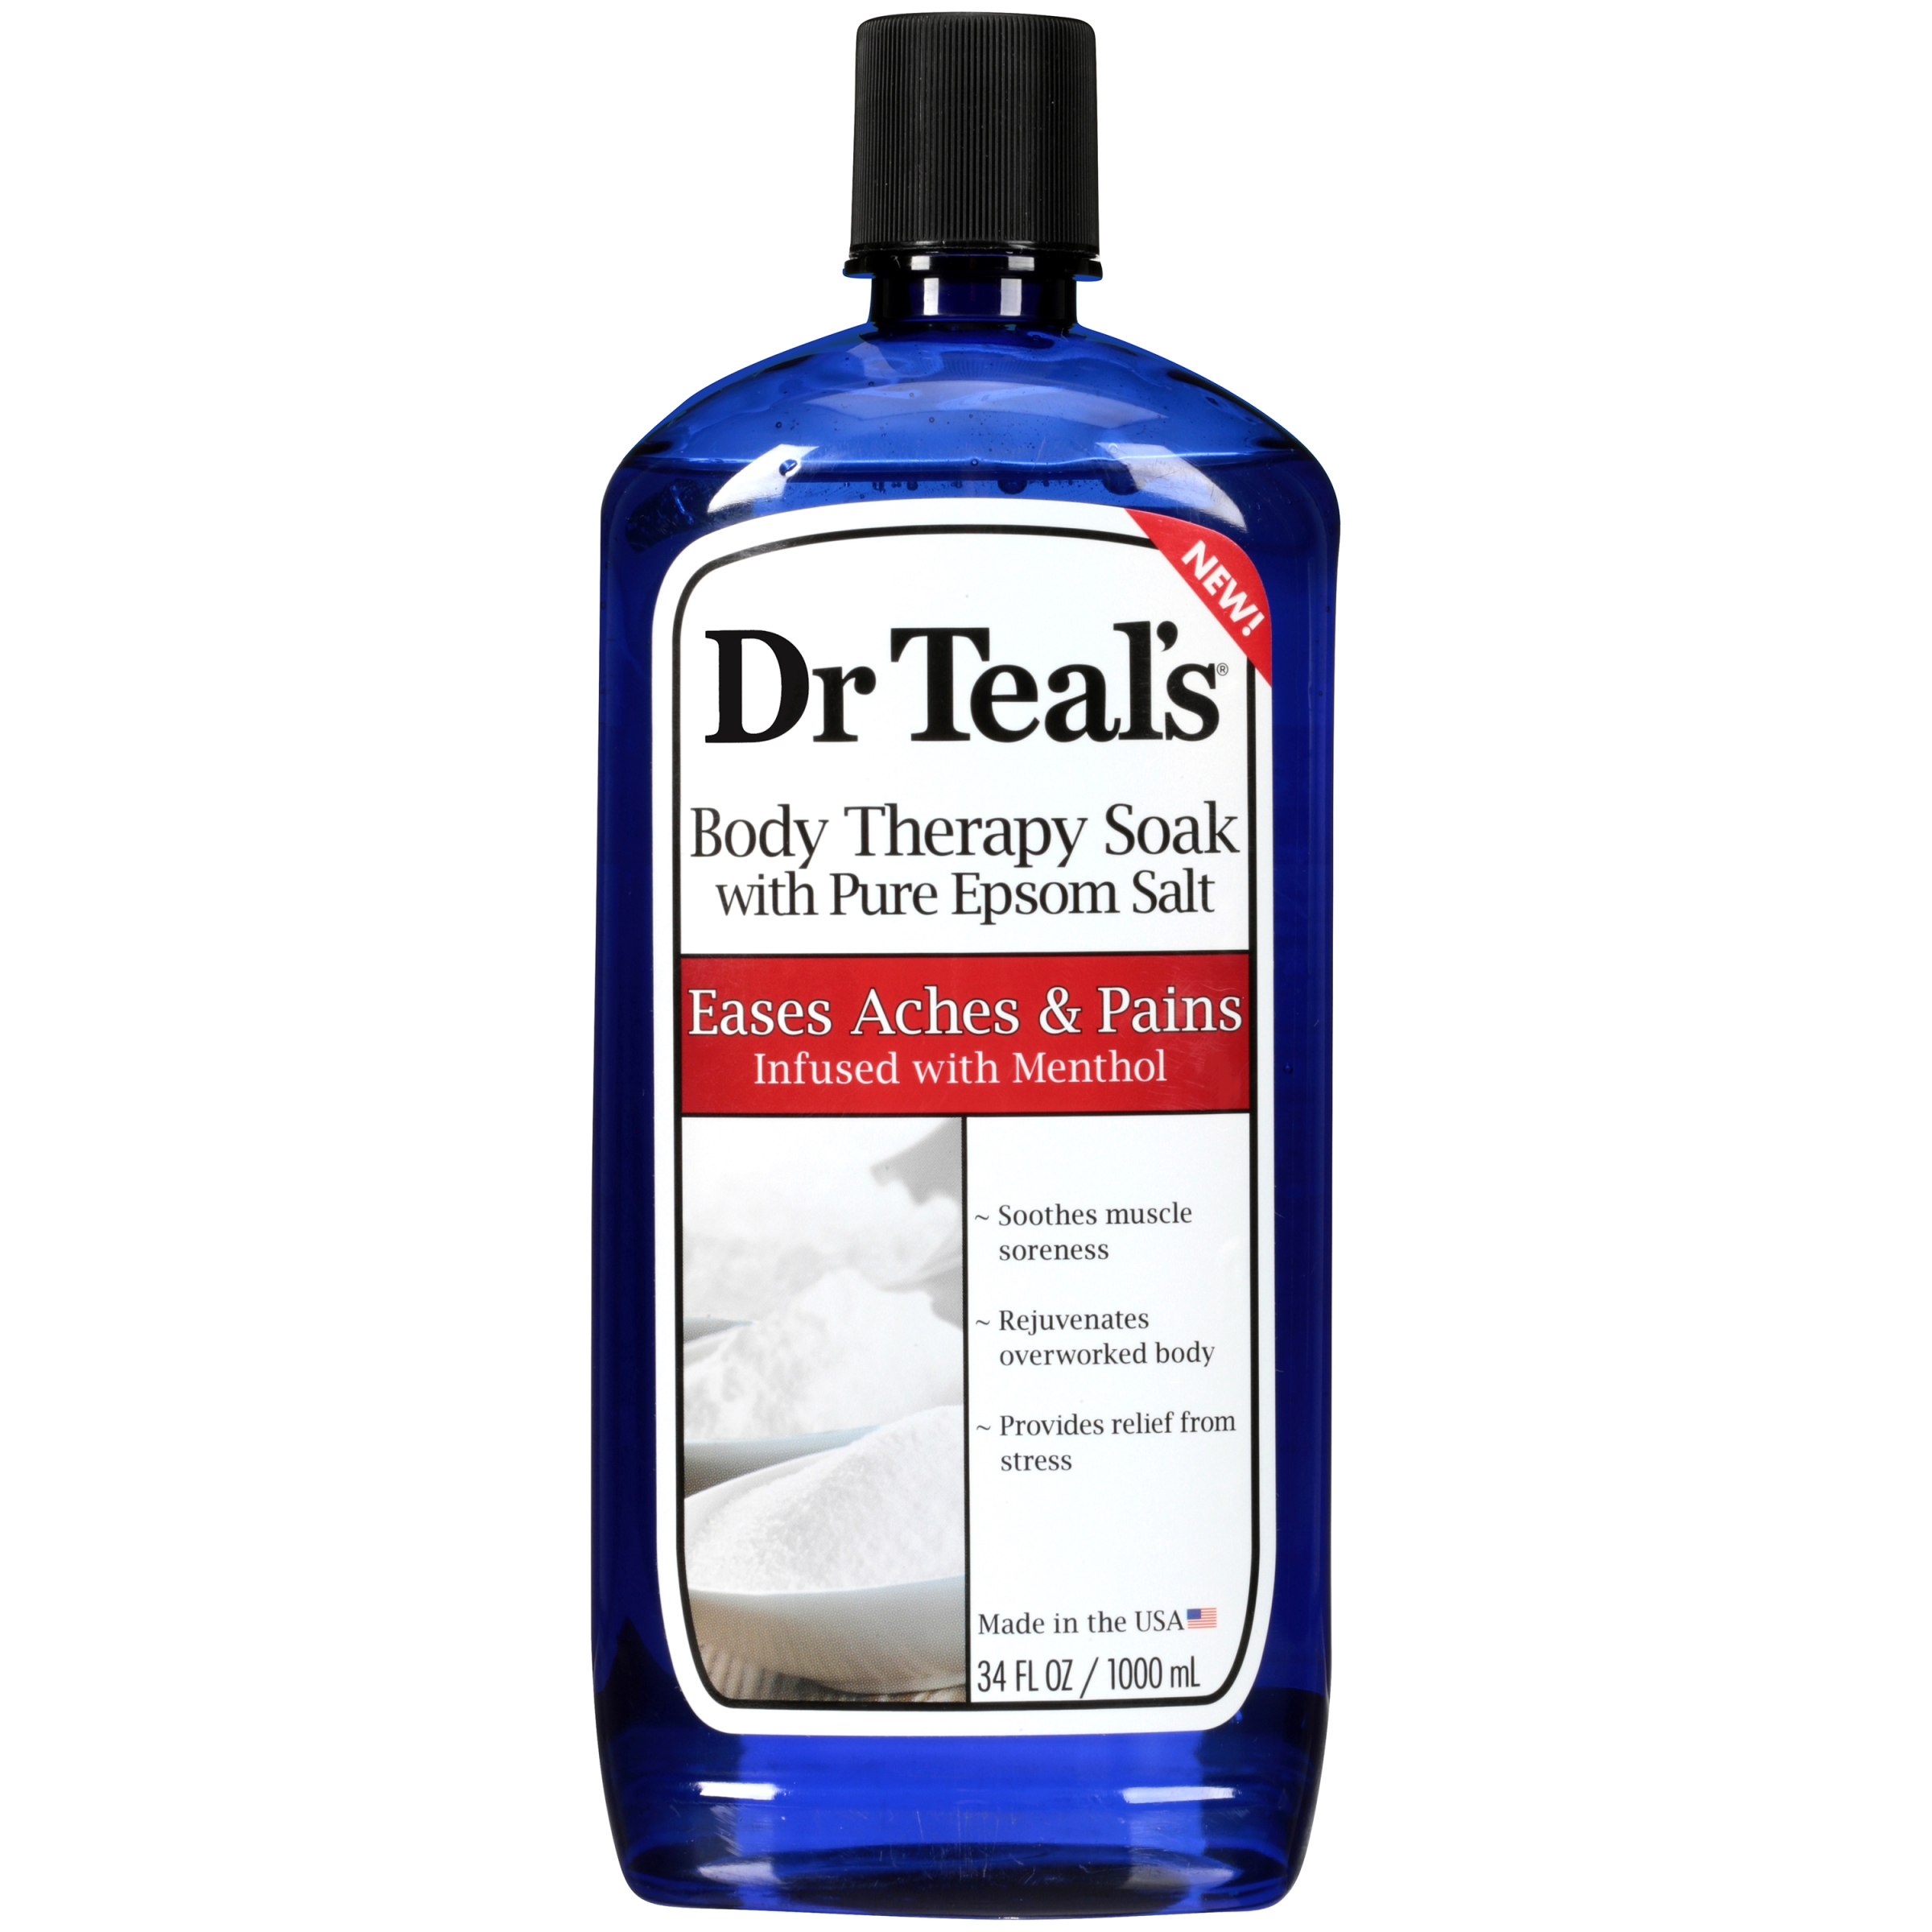 (2 pack) Dr Teal's Body Therapy Soak Foaming Bath, 34 oz